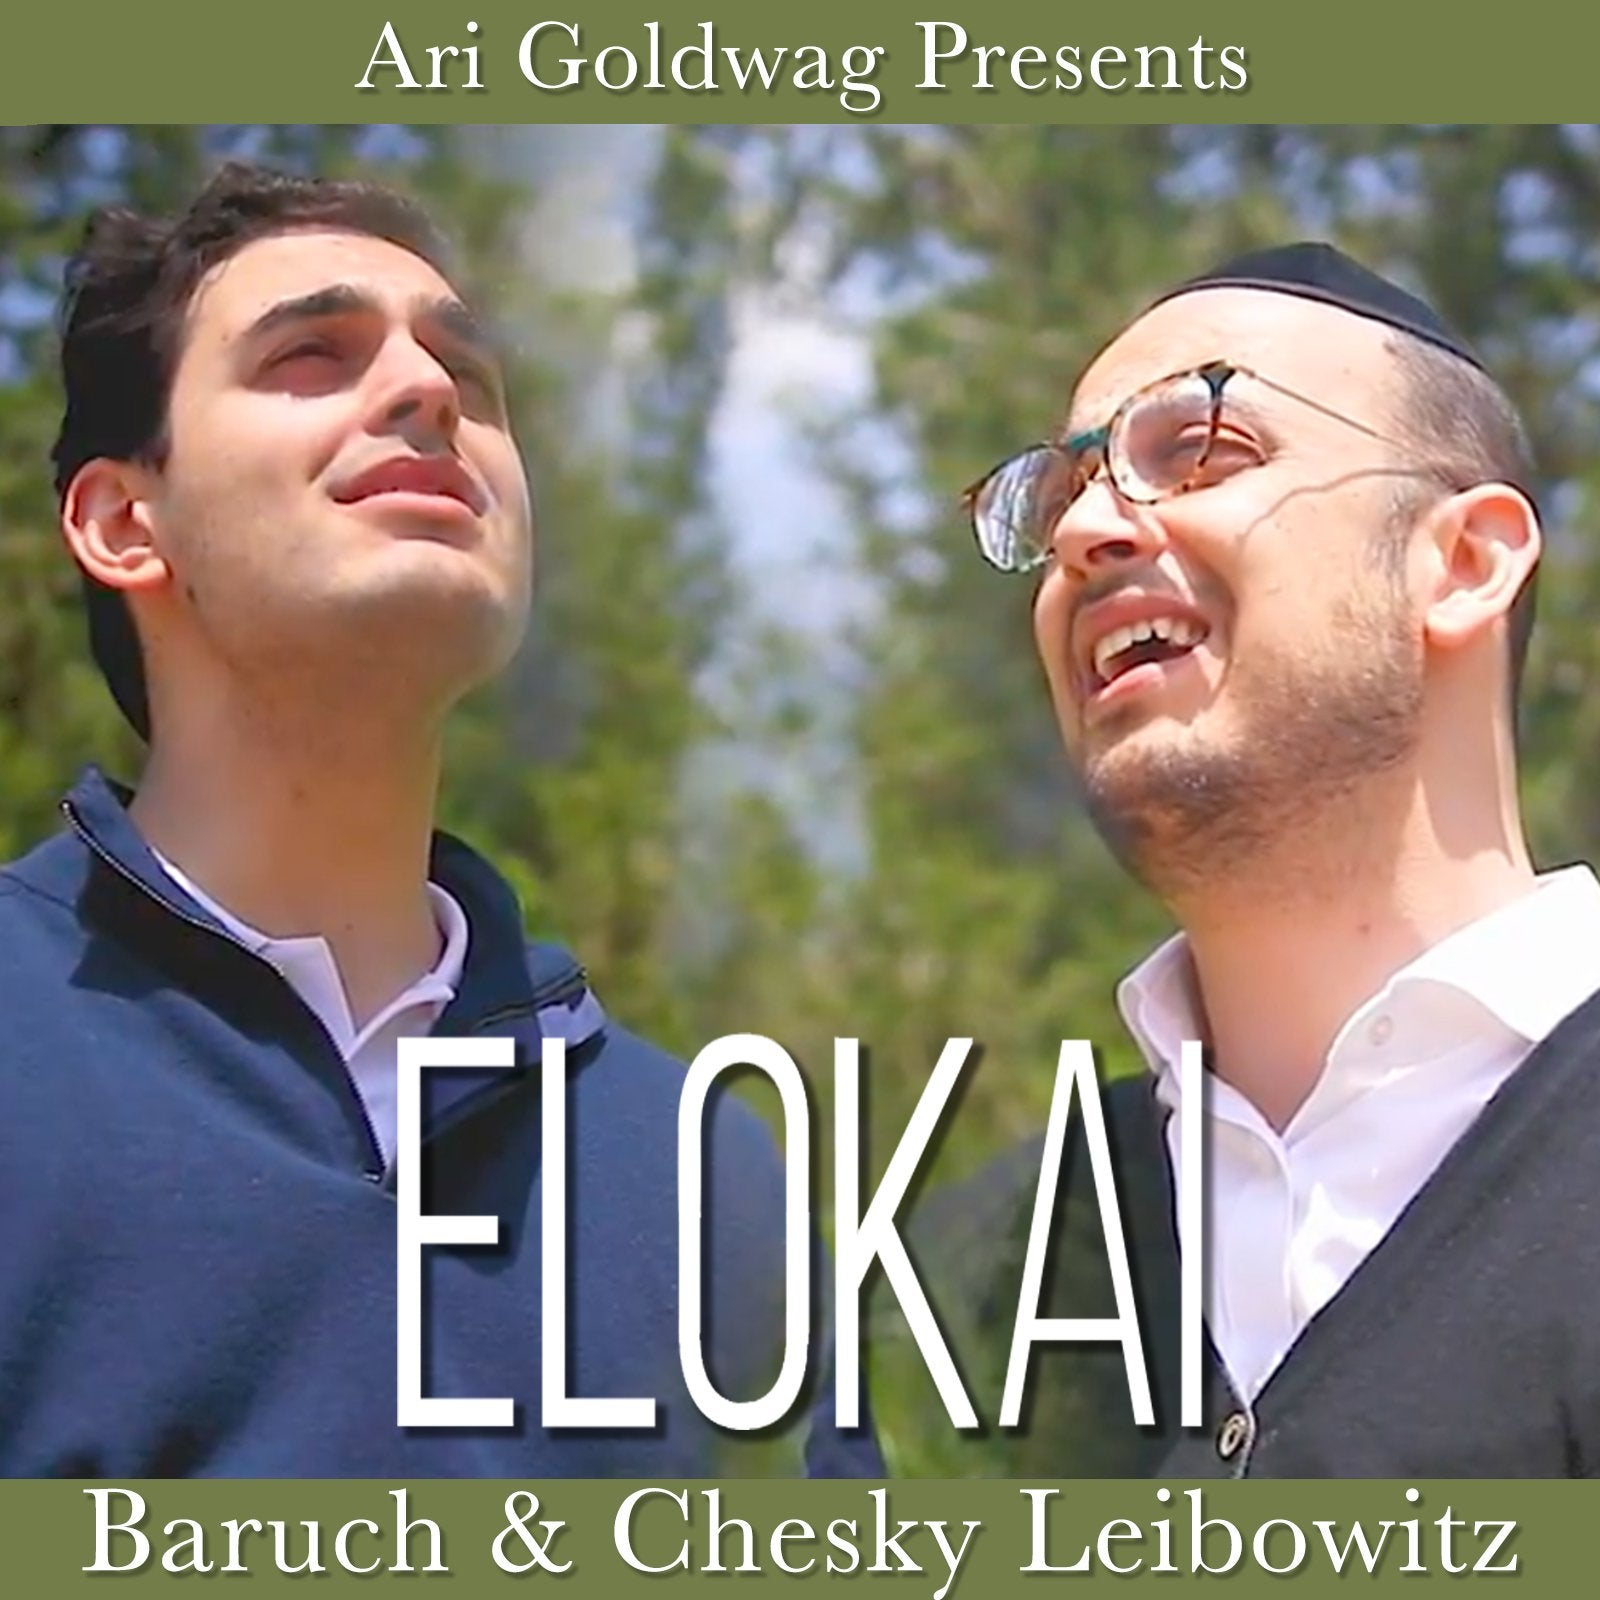 Baruch & Chesky Lebowitz - Elokai (Single)